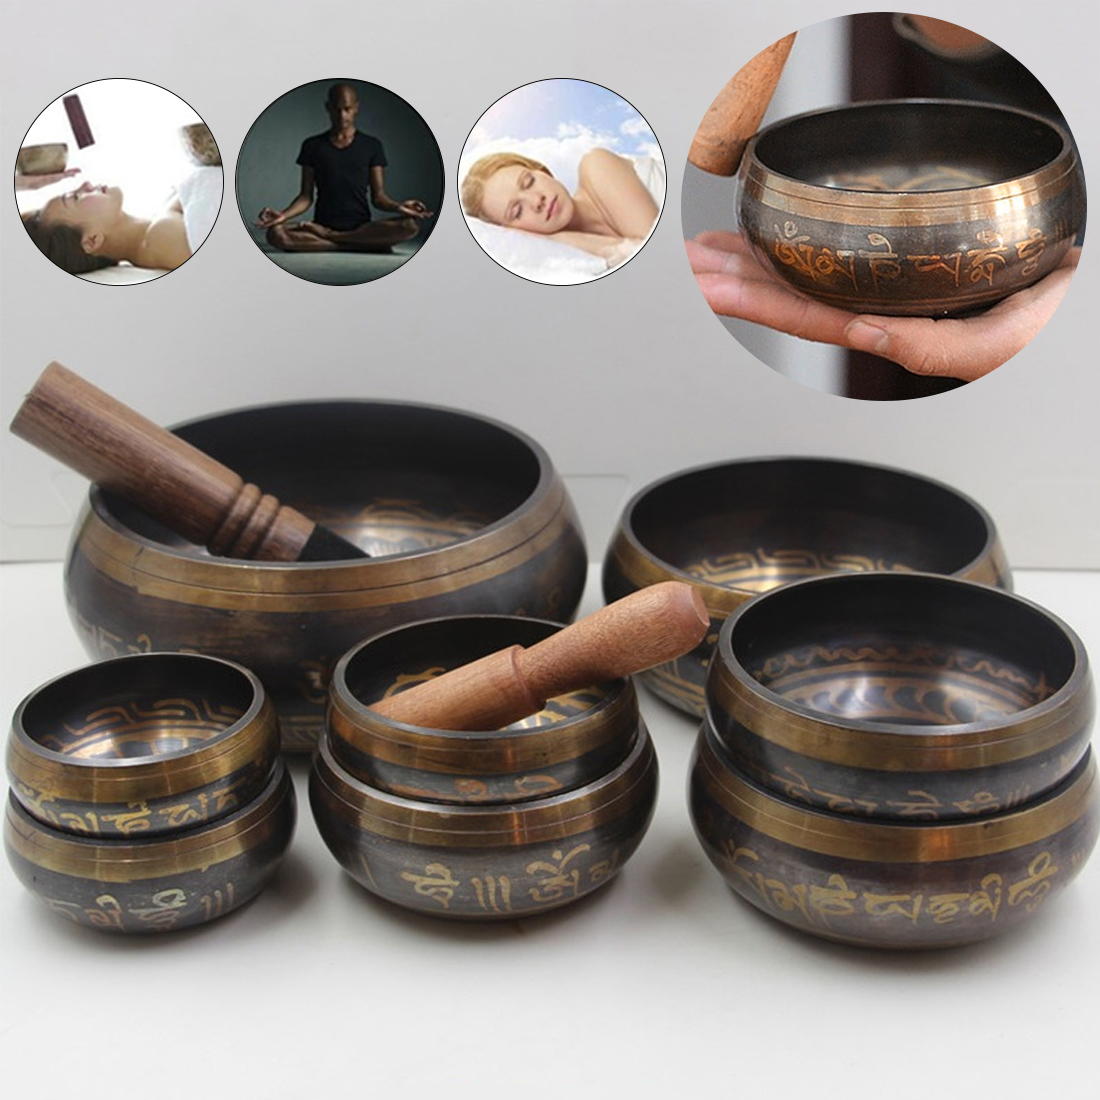 Hand Hammered Chakra Meditation Bowl Decorative Wall Dishes Yoga Tibetan Buddhist Brass Singing Bowl